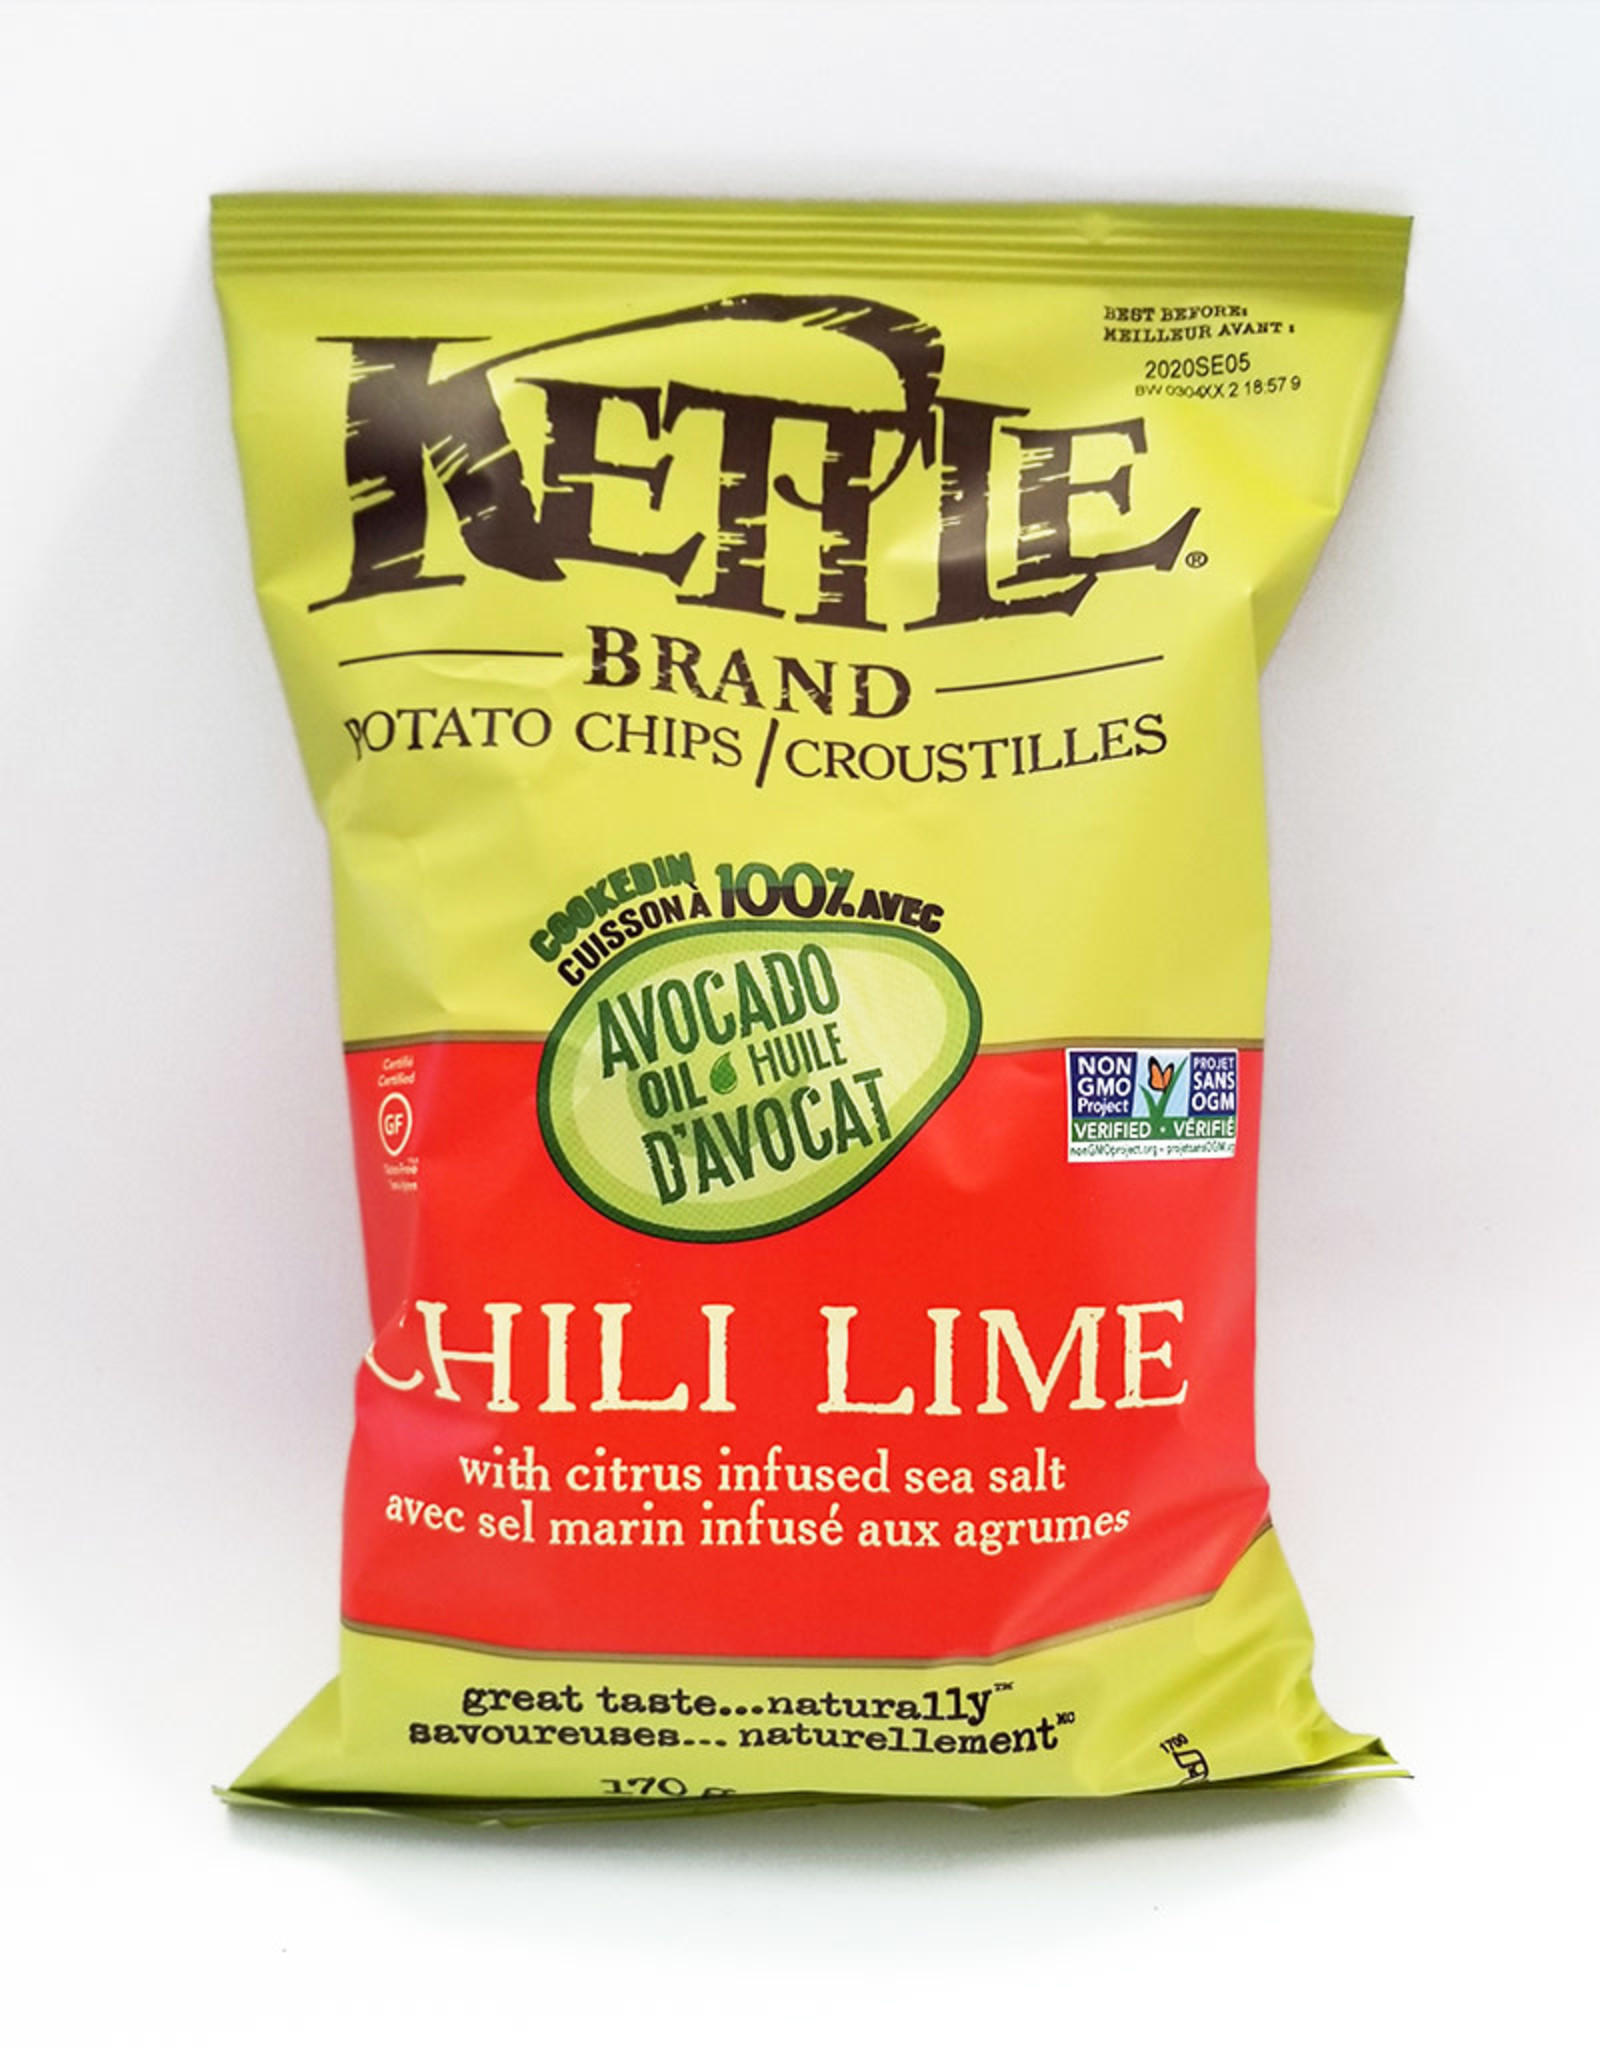 Kettle Kettle Brand - Potato Chips, Chili Lime (220g)